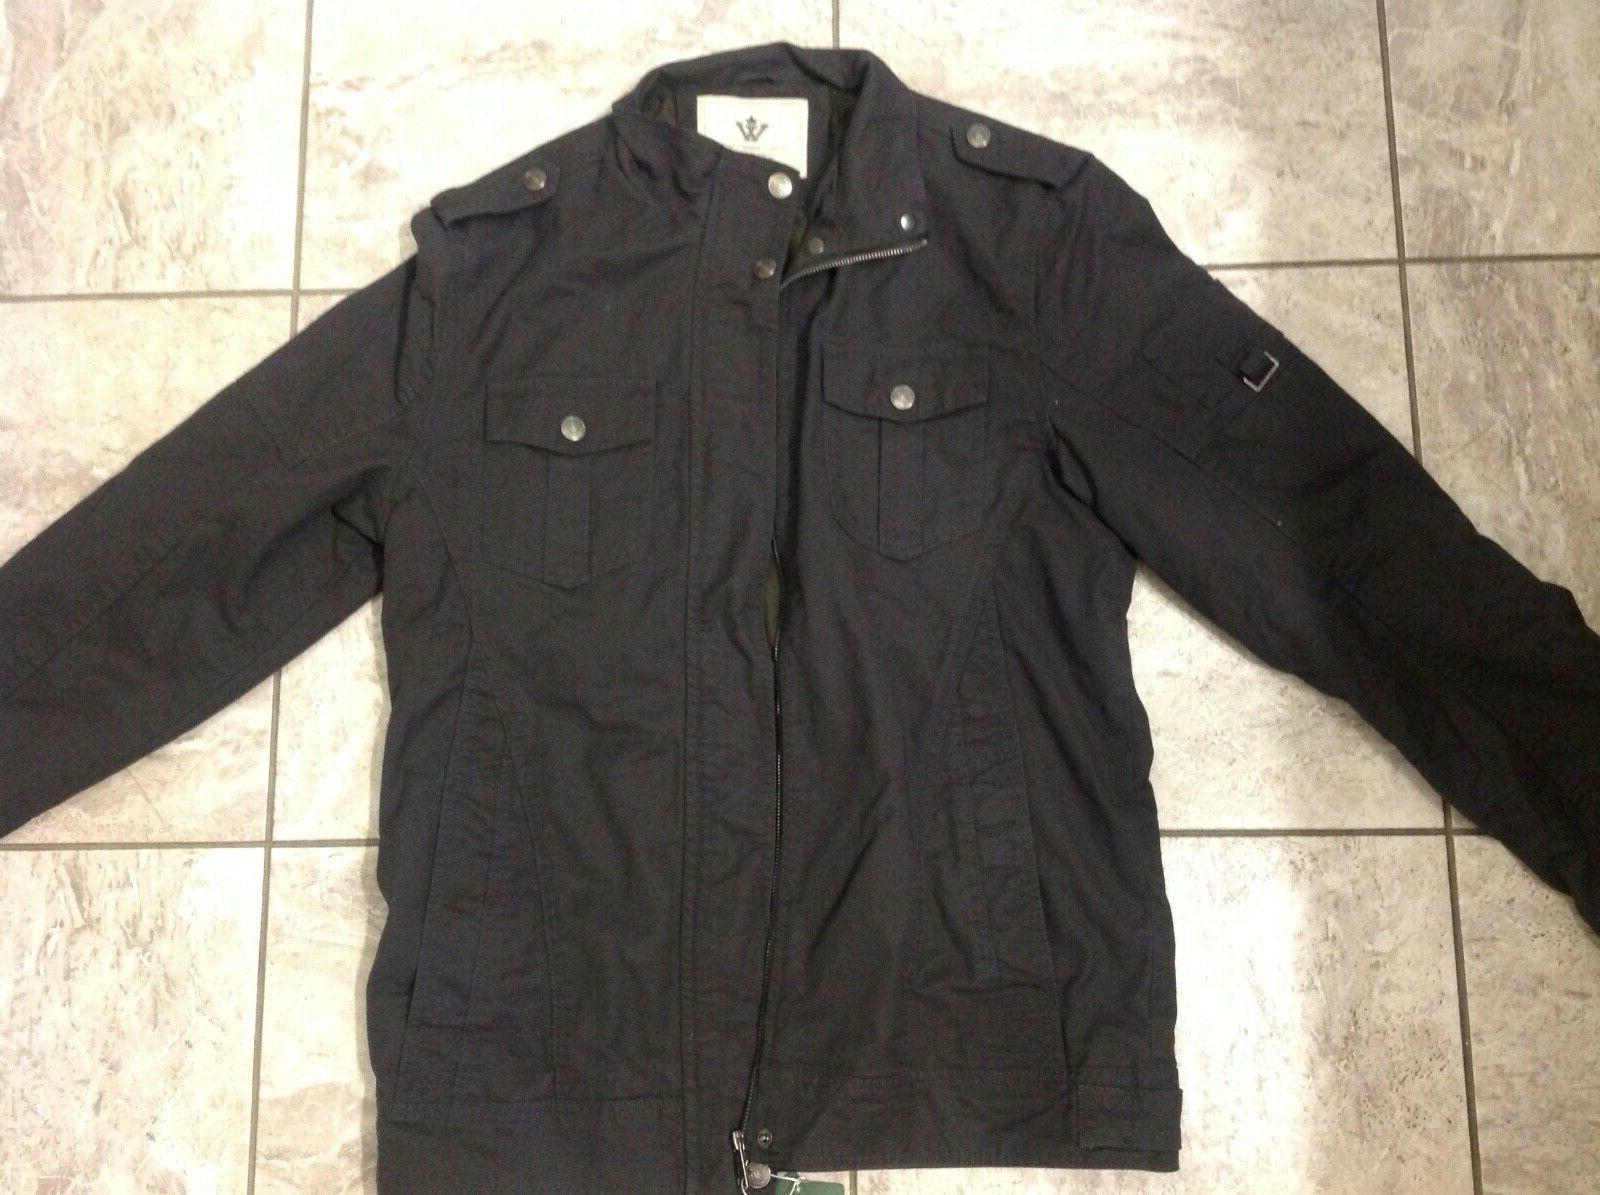 New with tags Men's Casual Jacket, Gray